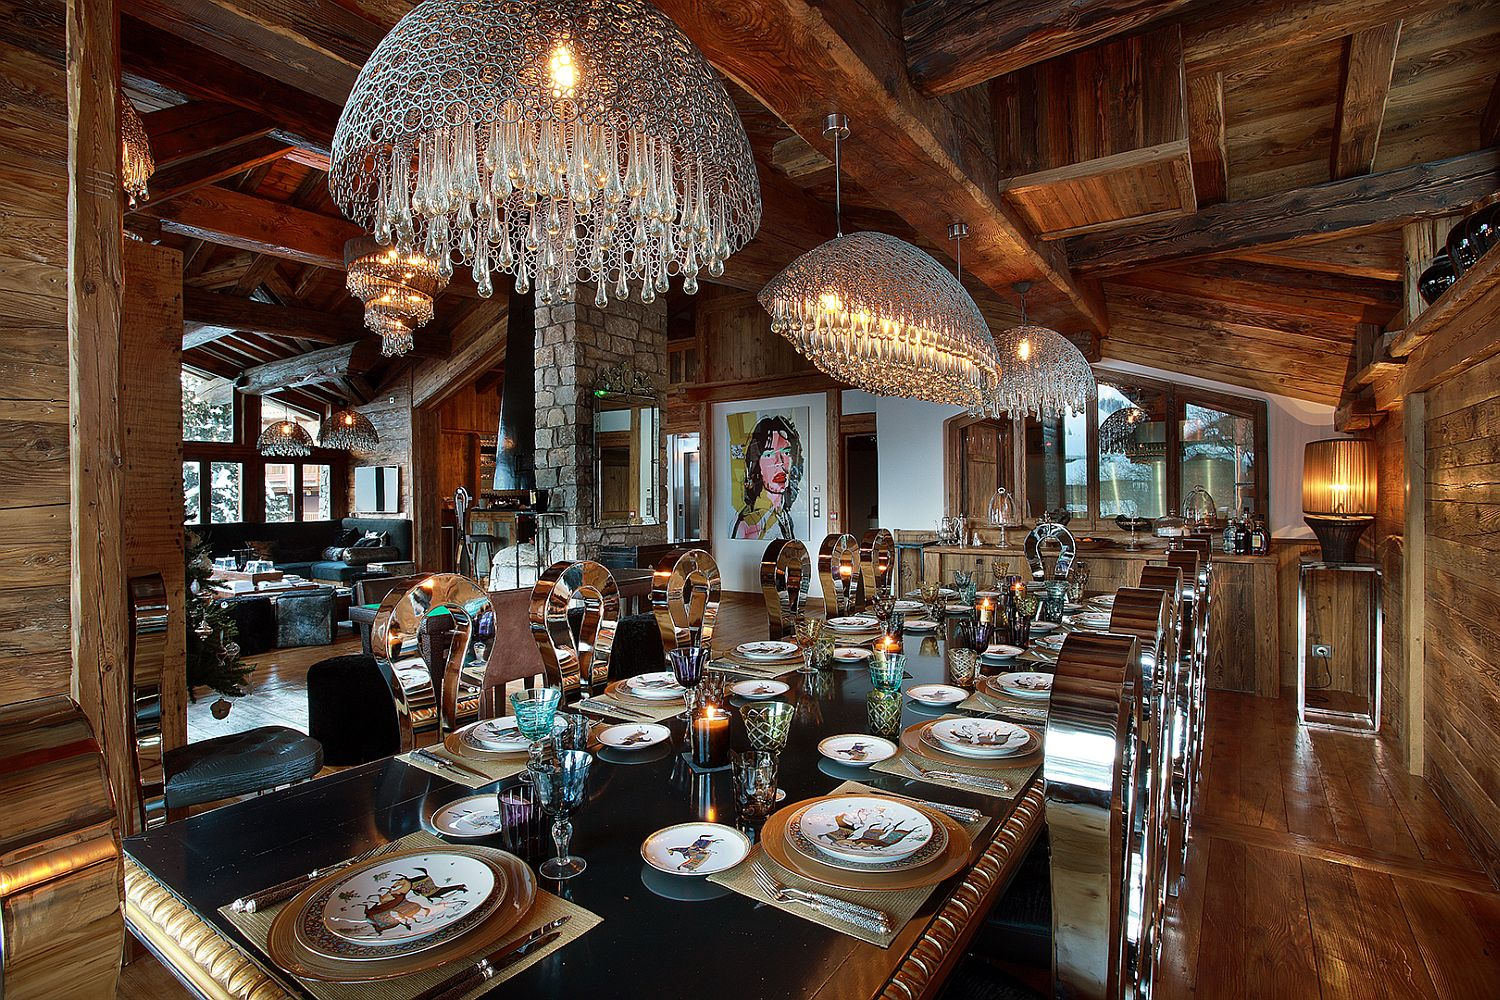 Spacious-dining-area-with-sparkling-chandeliers